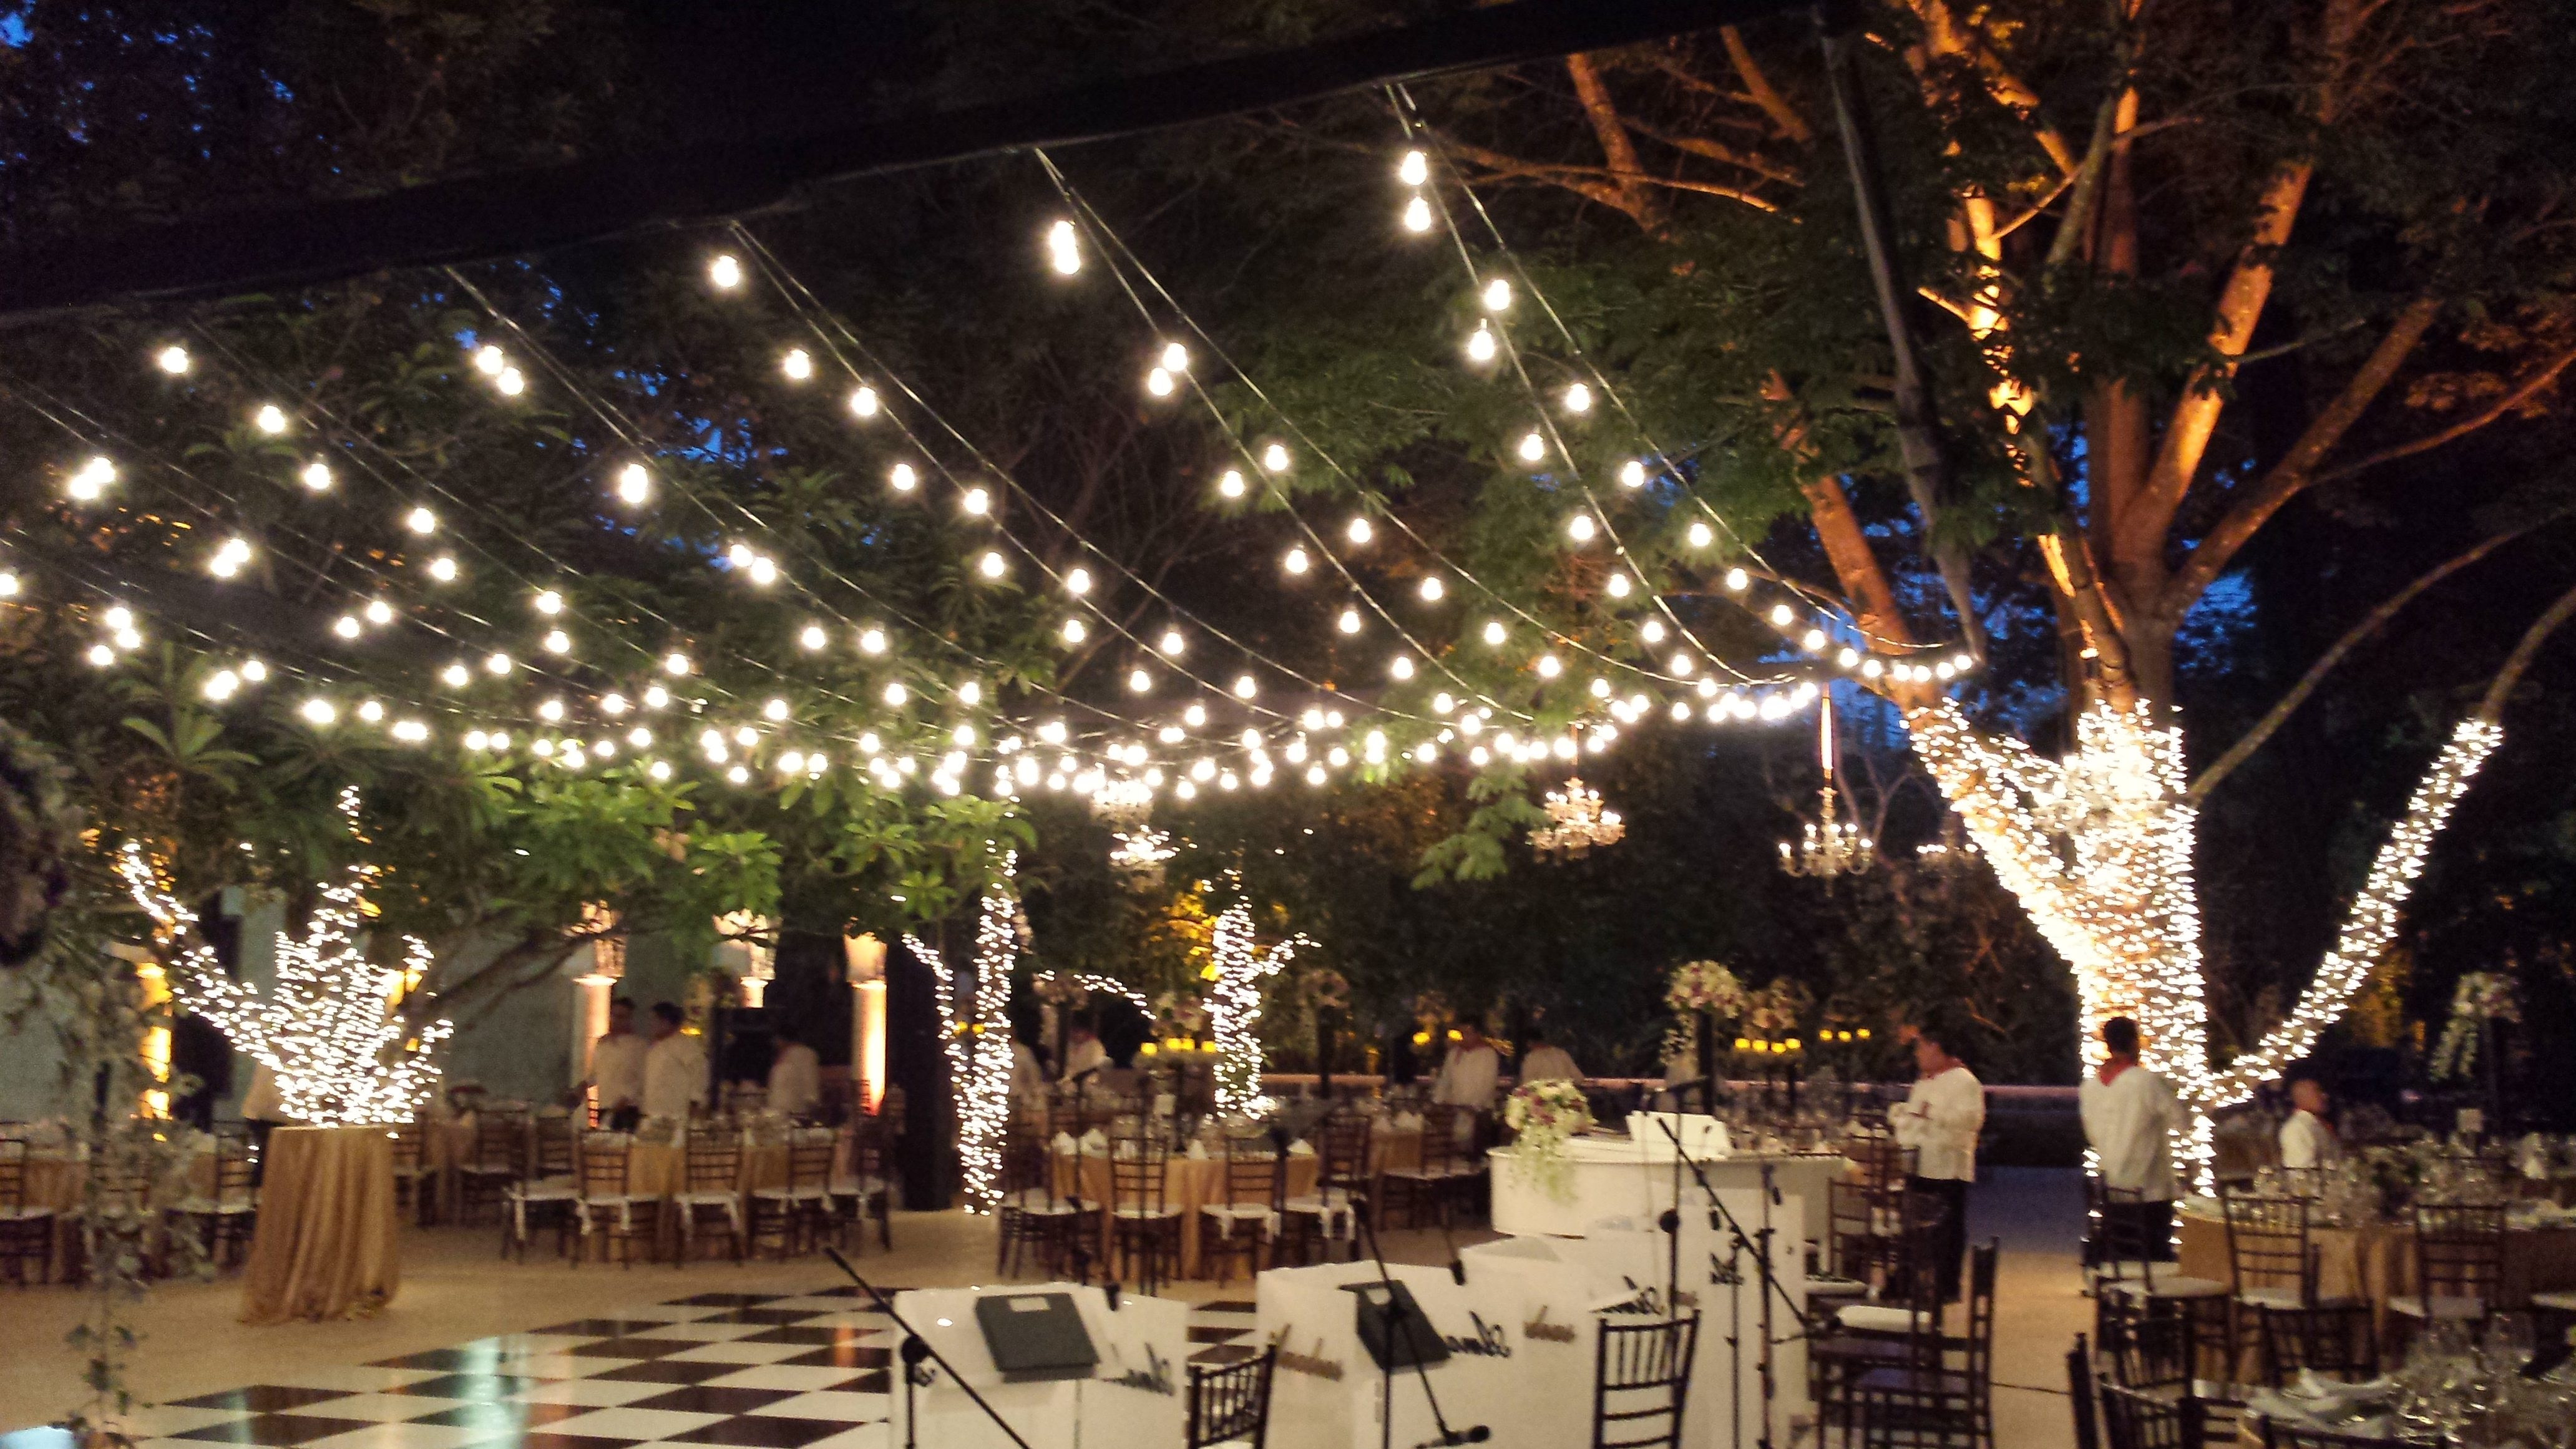 Patio String Lights Ideas Awesome House Lighting Ideas To throughout Backyard String Light Ideas